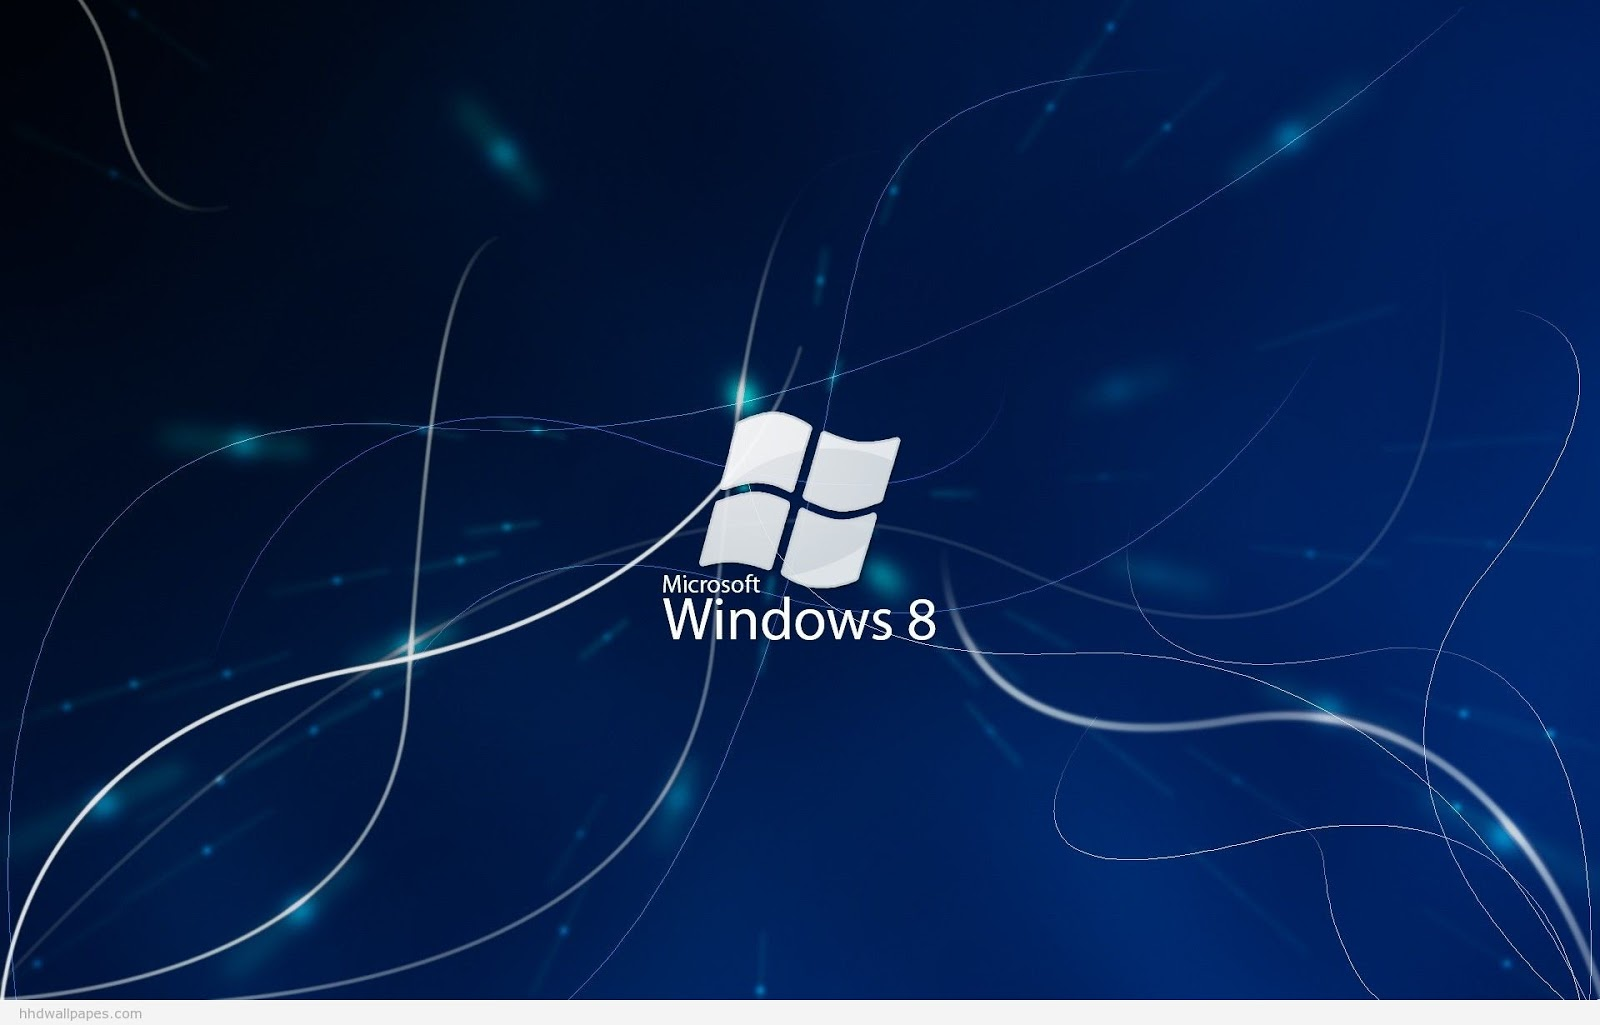 Windows 8 high resolution wallpaper wallpapersafari for High quality windows